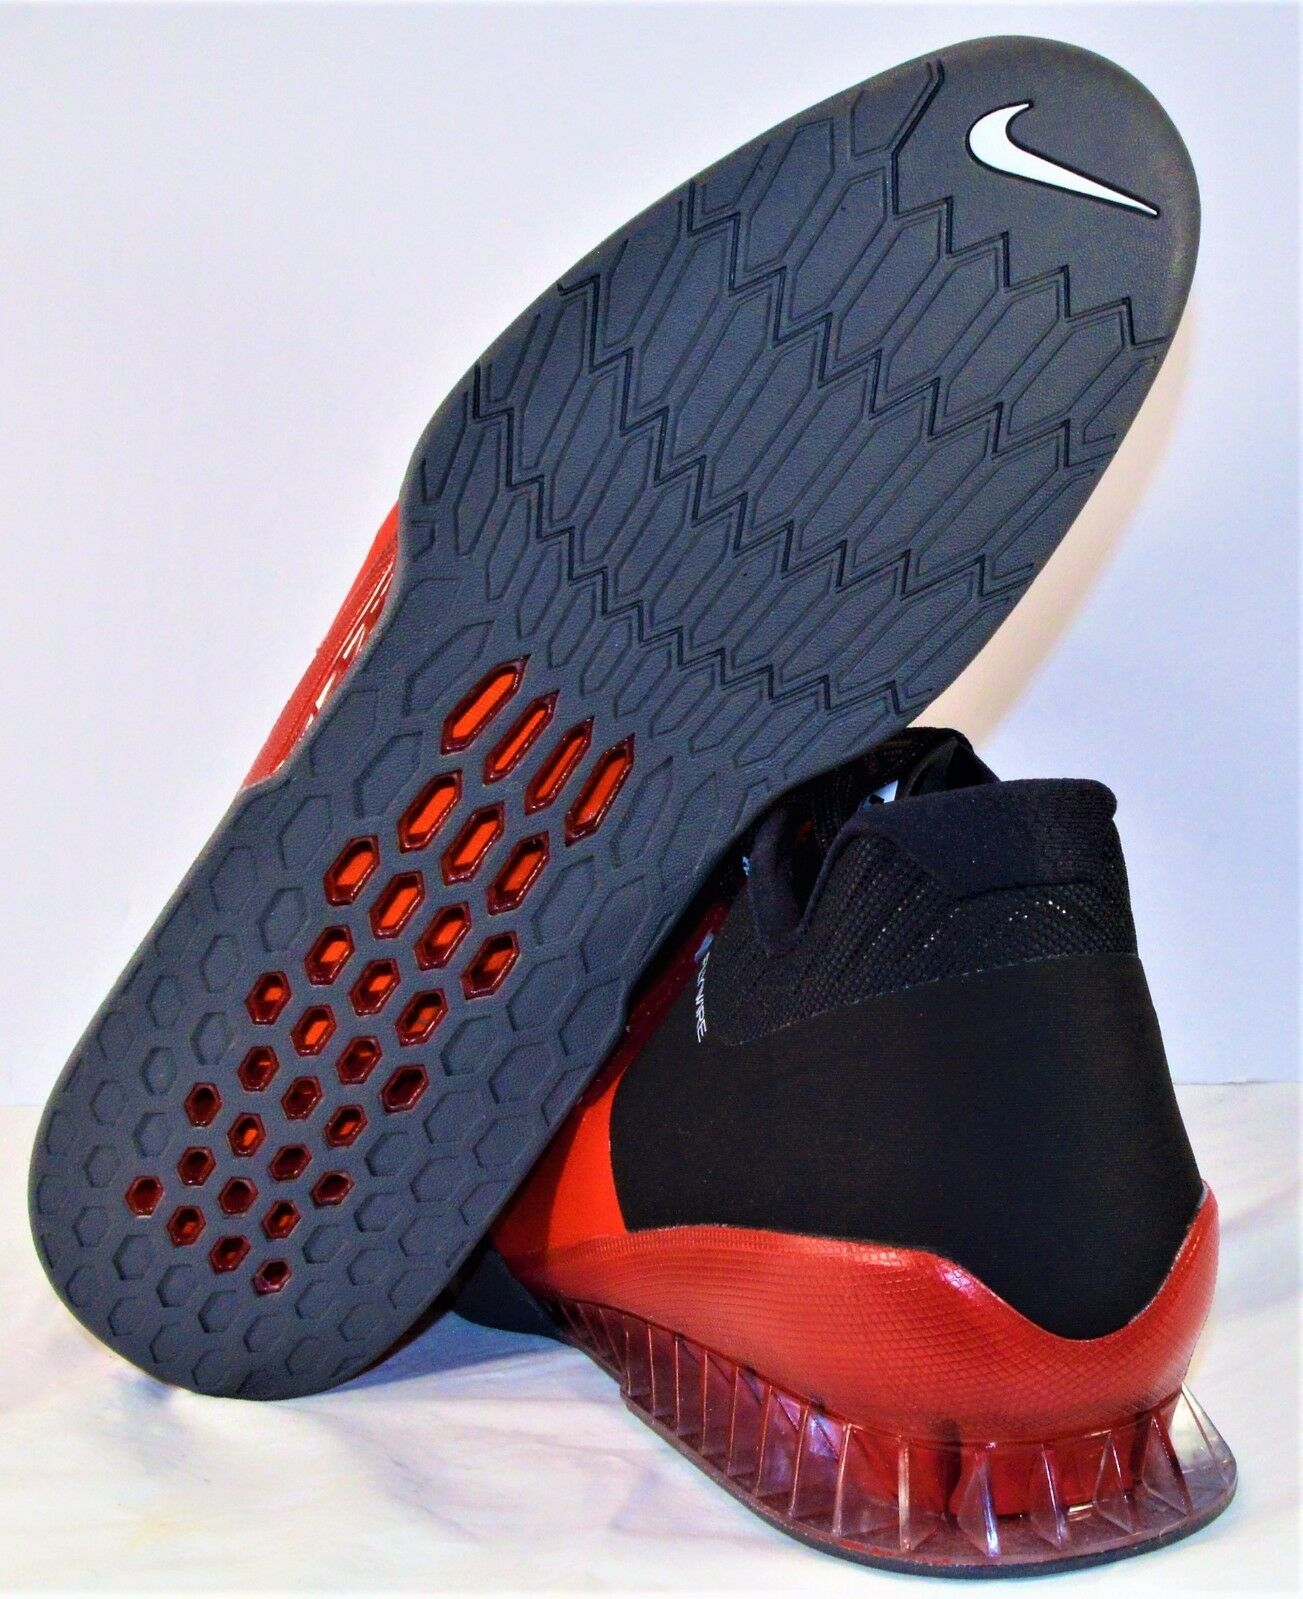 cb62a36fccf73 ... Nike Romaleos 3 Red       Black Training Weightlifting shoes Sz 15 NEW  852933 600